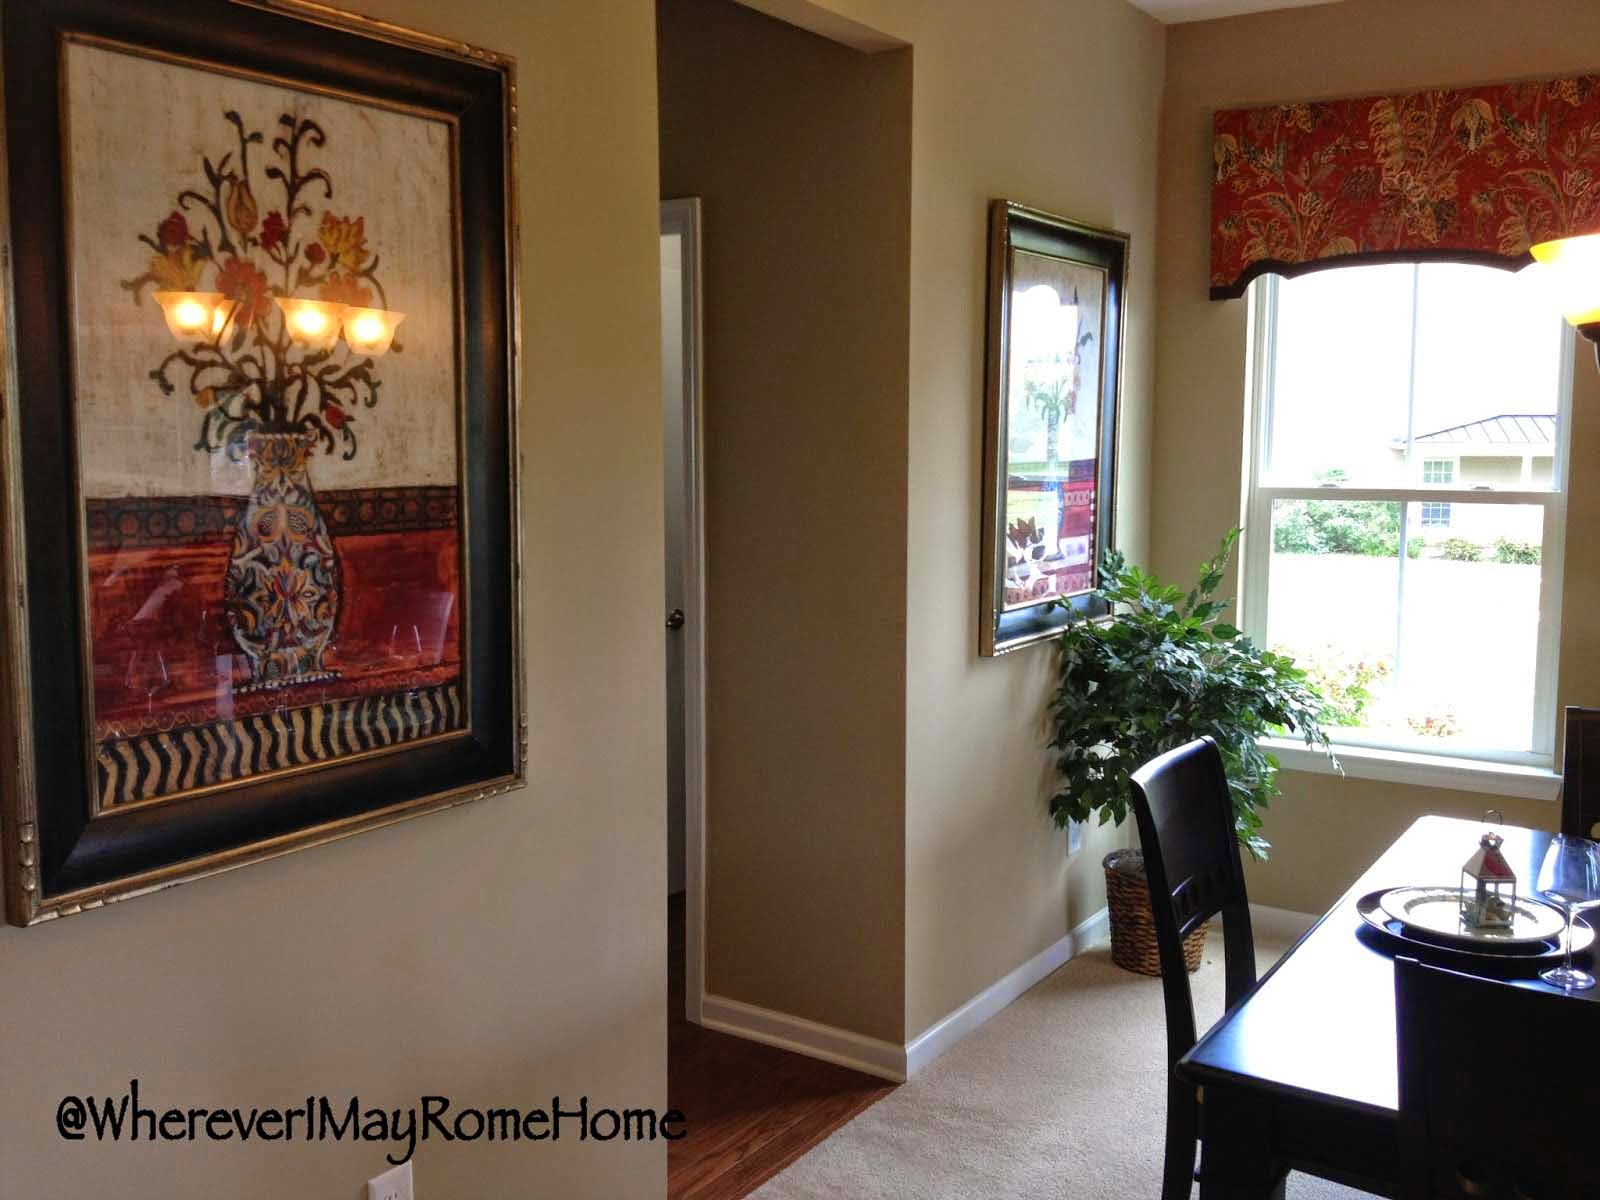 Decorated Rome Model Indian Trail NC